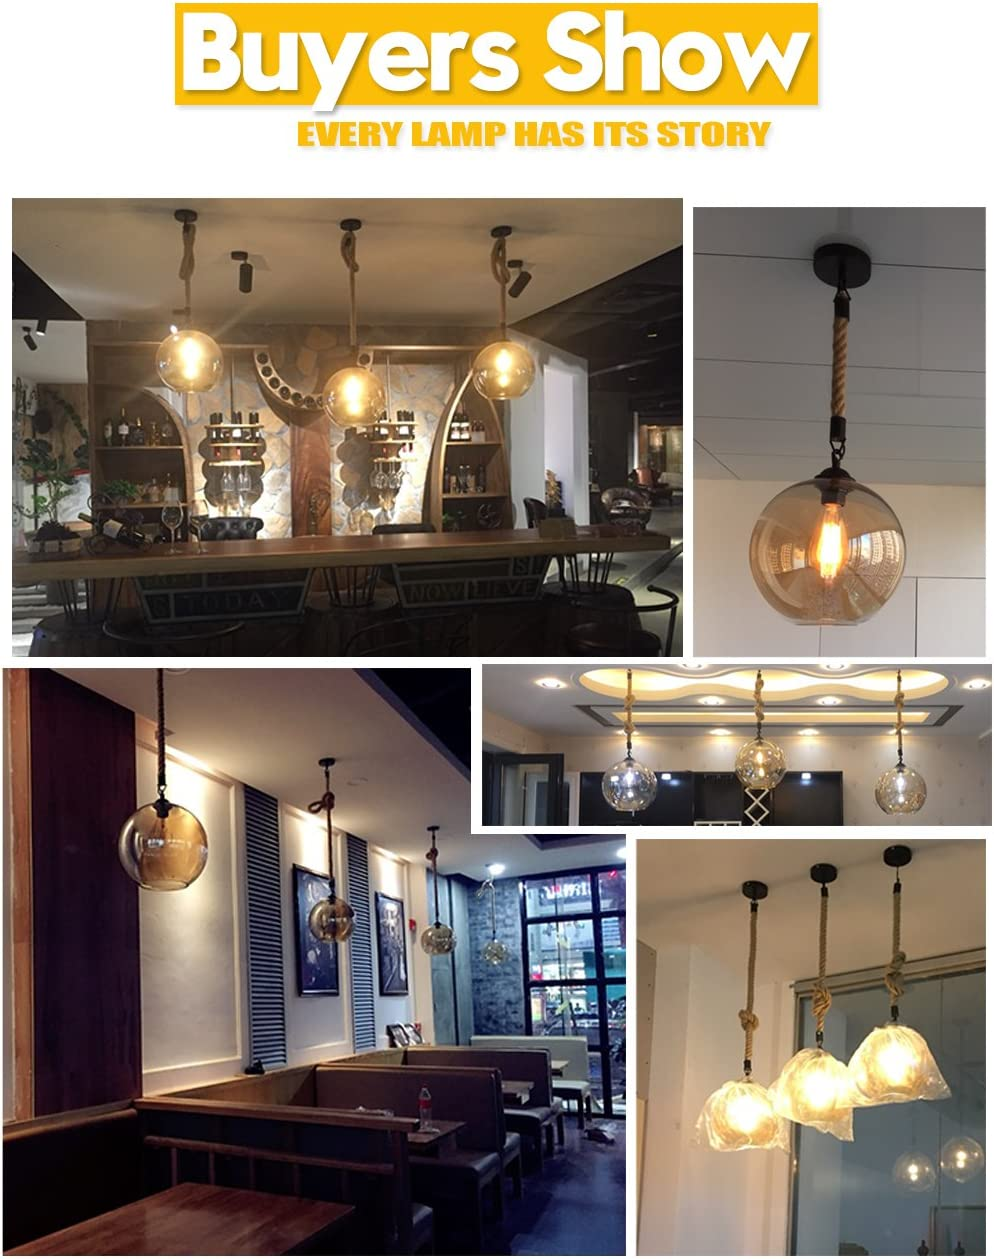 iYoee Industrial Glass Globe Pendant Light Fixture - Industrial Style Globe Glass Lampshade Hanging Fixture Lighting with Adjustable Cord Length for Kitchen Island Lights, use E26 Edison Bulb - -